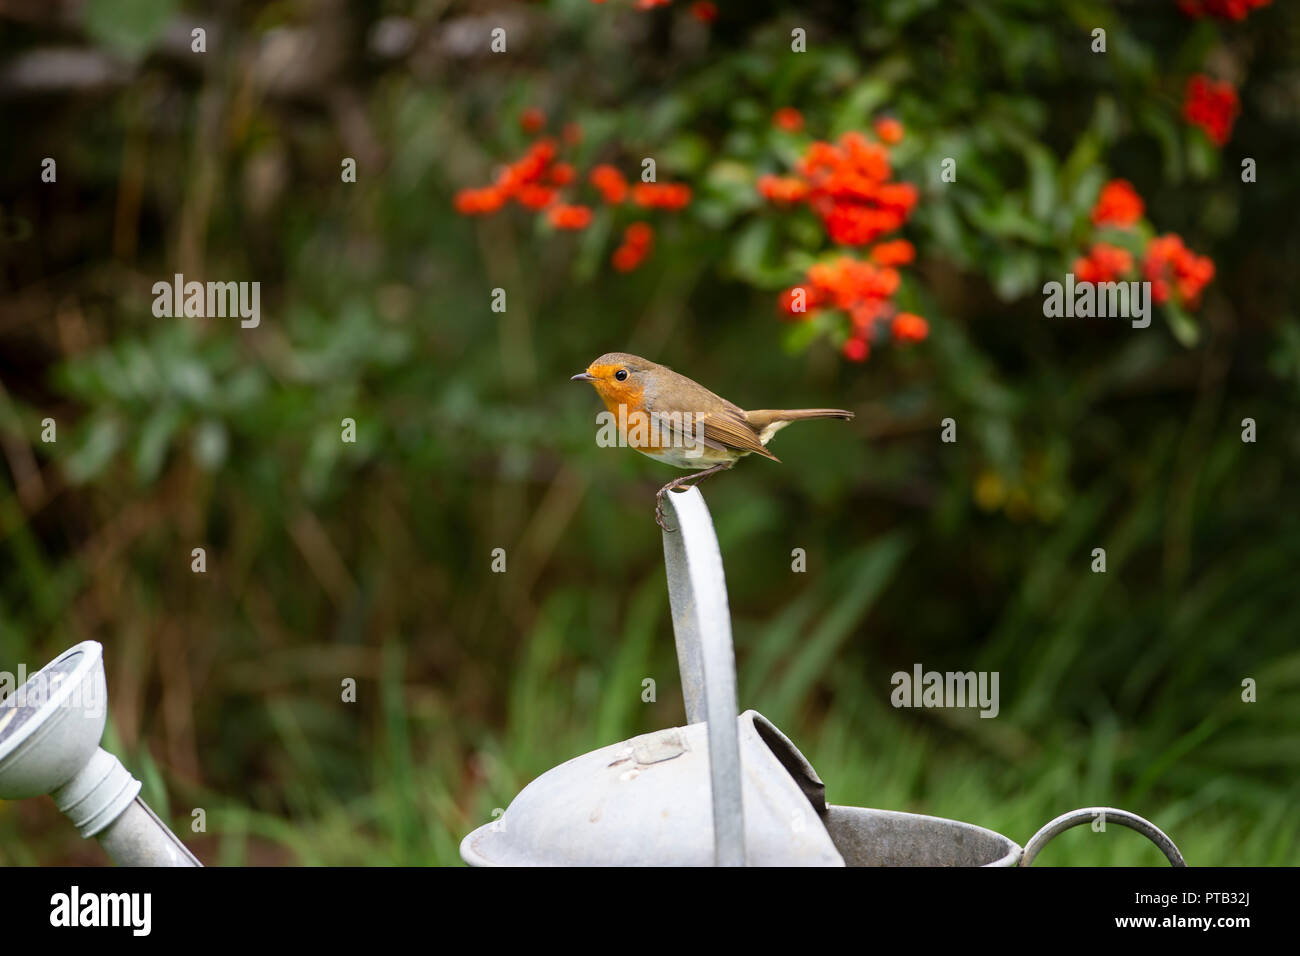 European Robin Erithacus rubecula perched on the handle of an old galvanised watering can - Stock Image